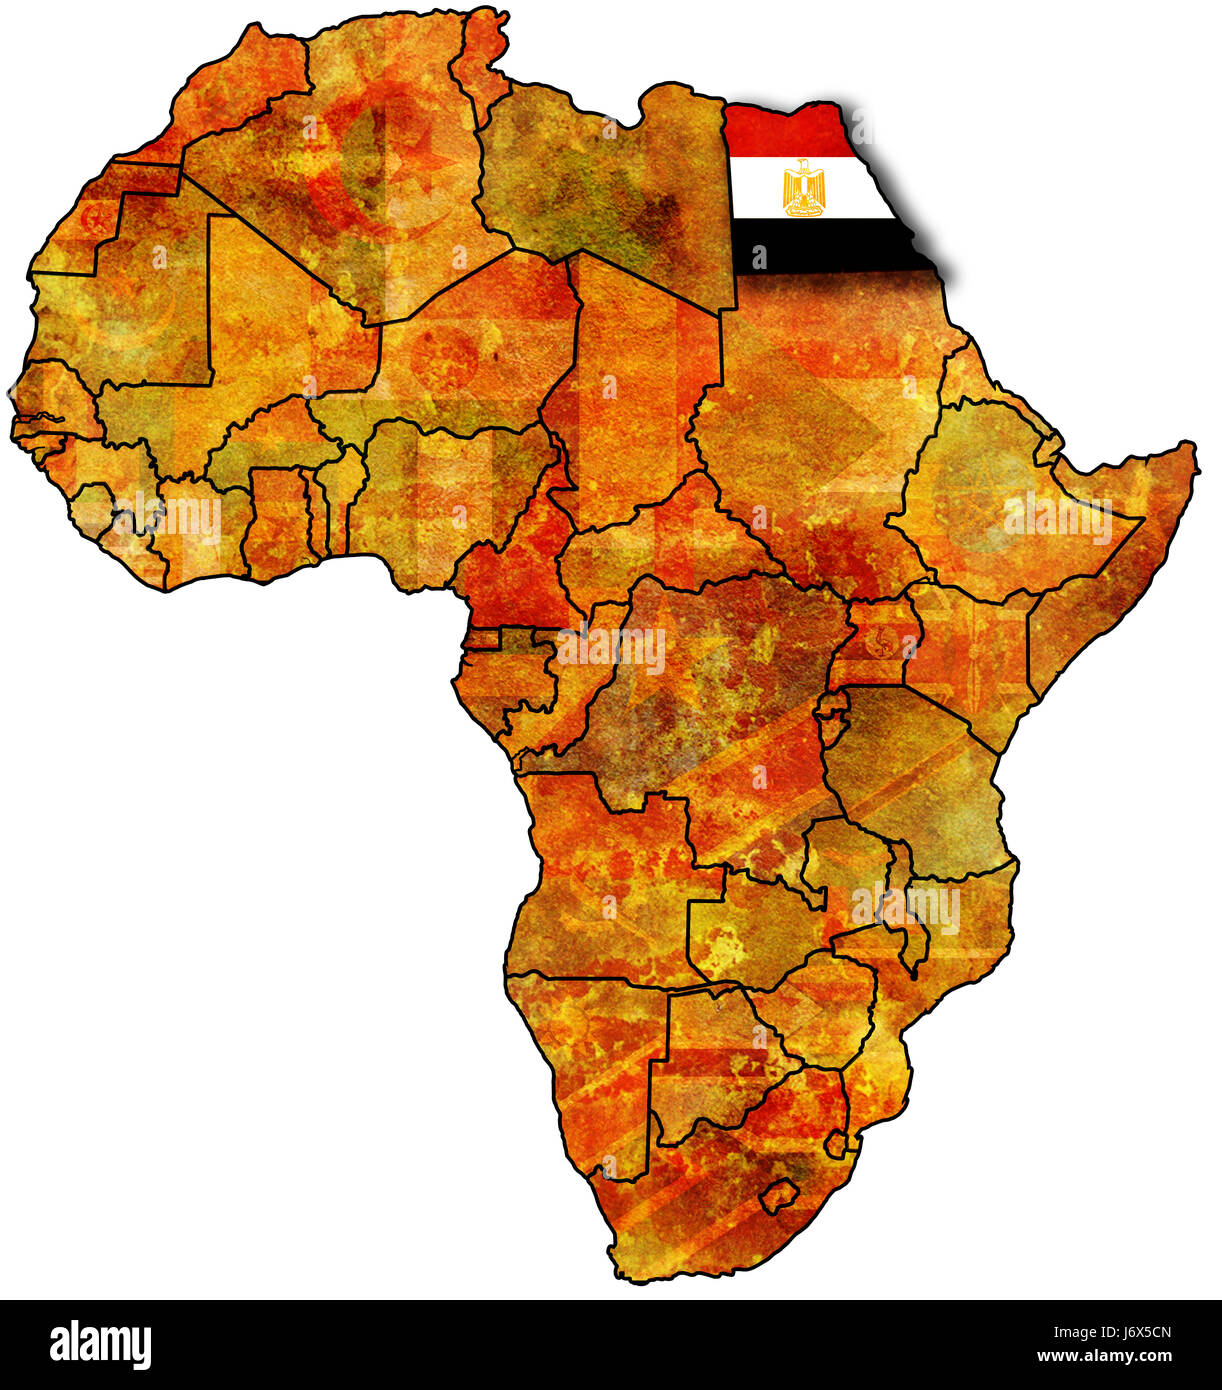 egypt on africa map Stock Photo 141945909 Alamy